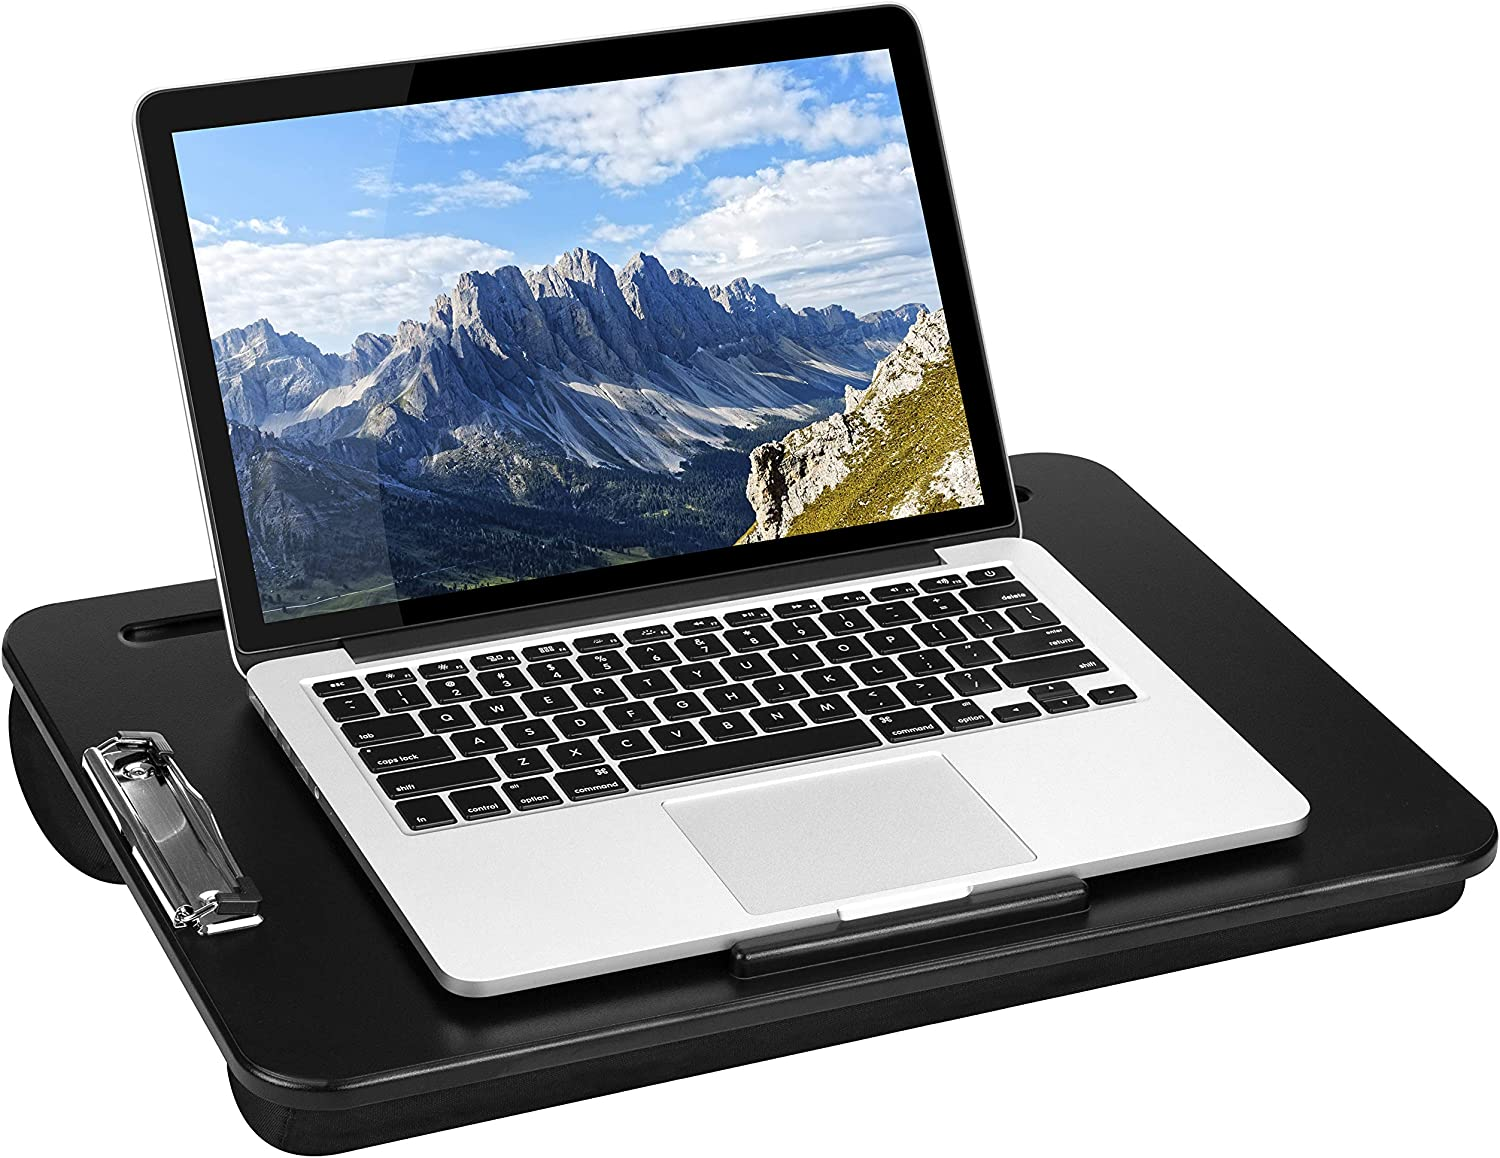 LapGear Clipboard Lap Desk - Black - Fits Up to 15.6 Inch Laptops - Style No. 45138